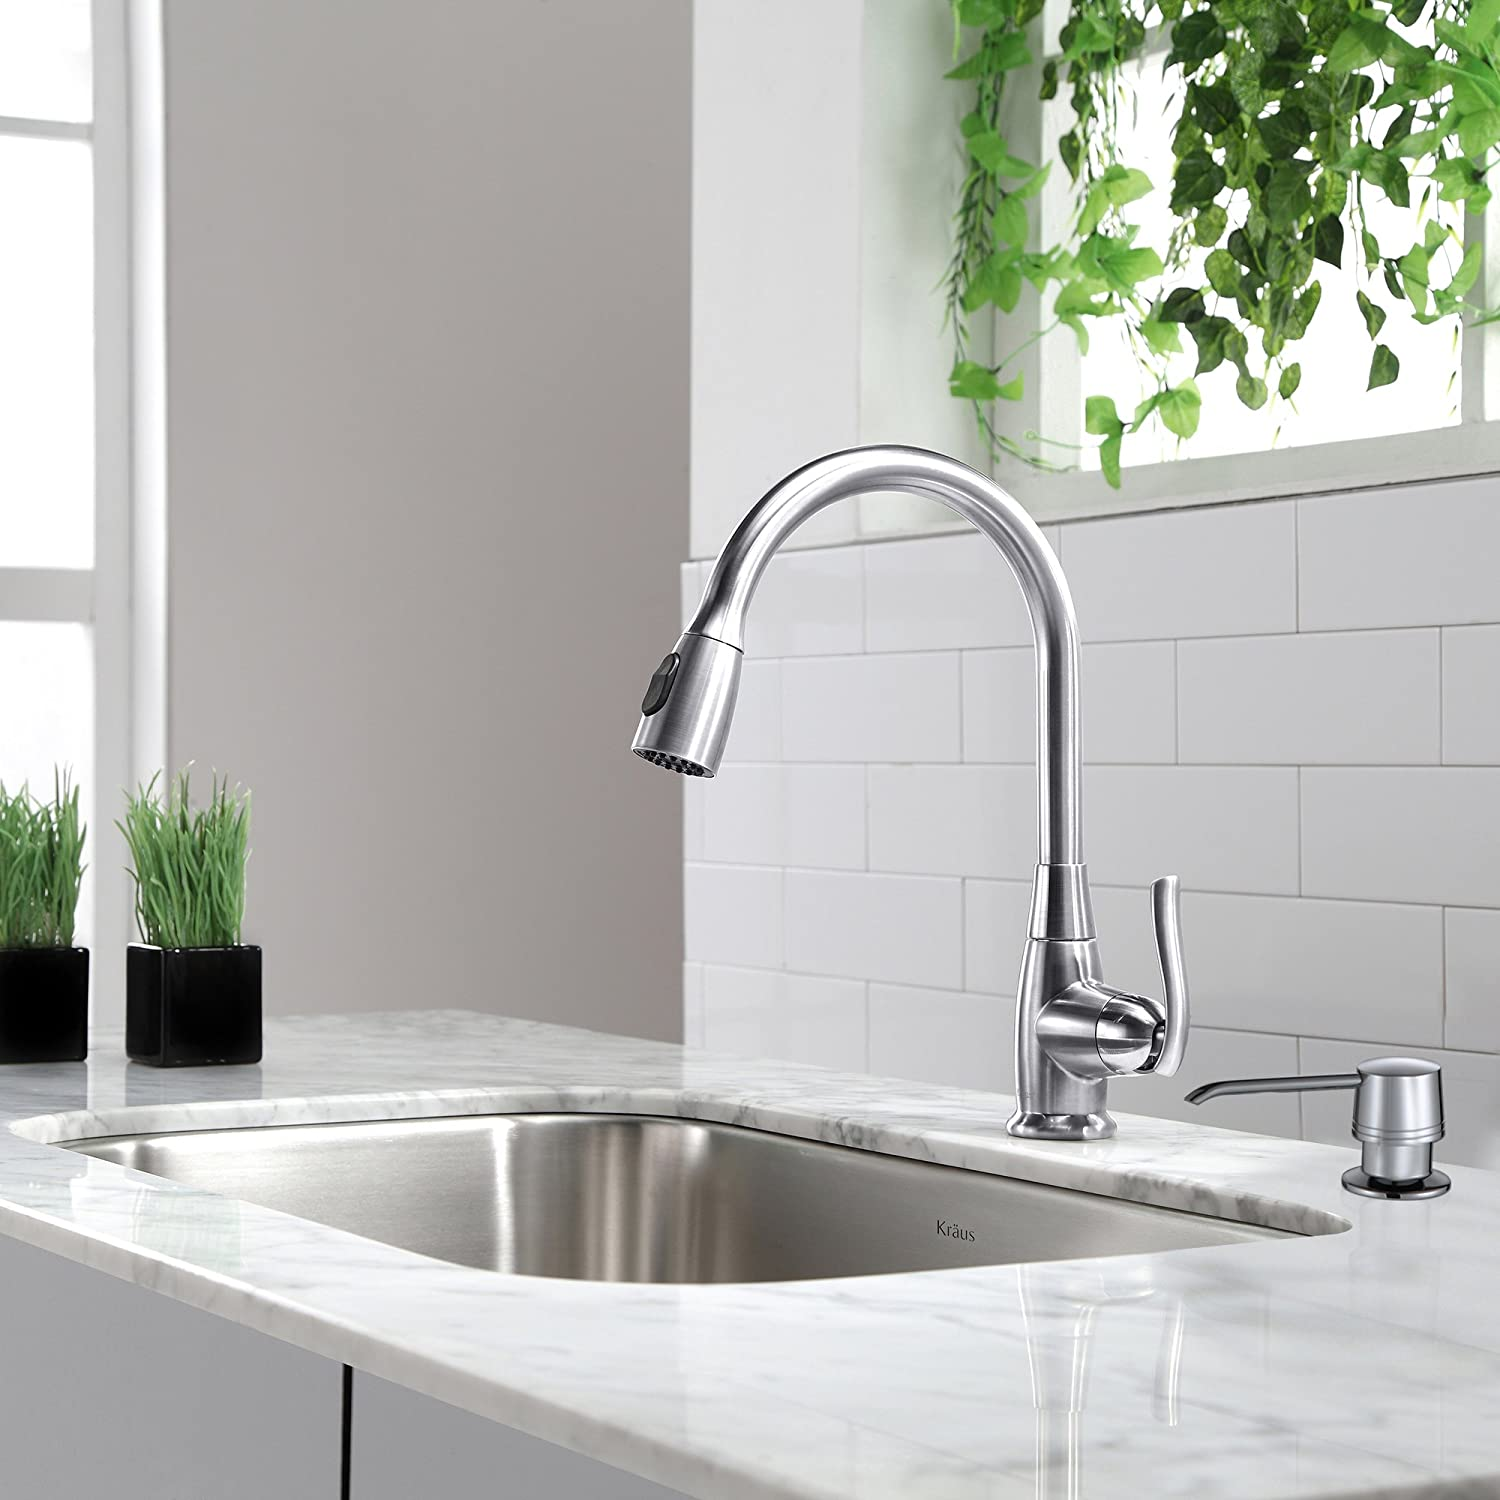 Kraus KPF-2230CH Single Lever Pull Out Kitchen Faucet Chrome - Touch ...